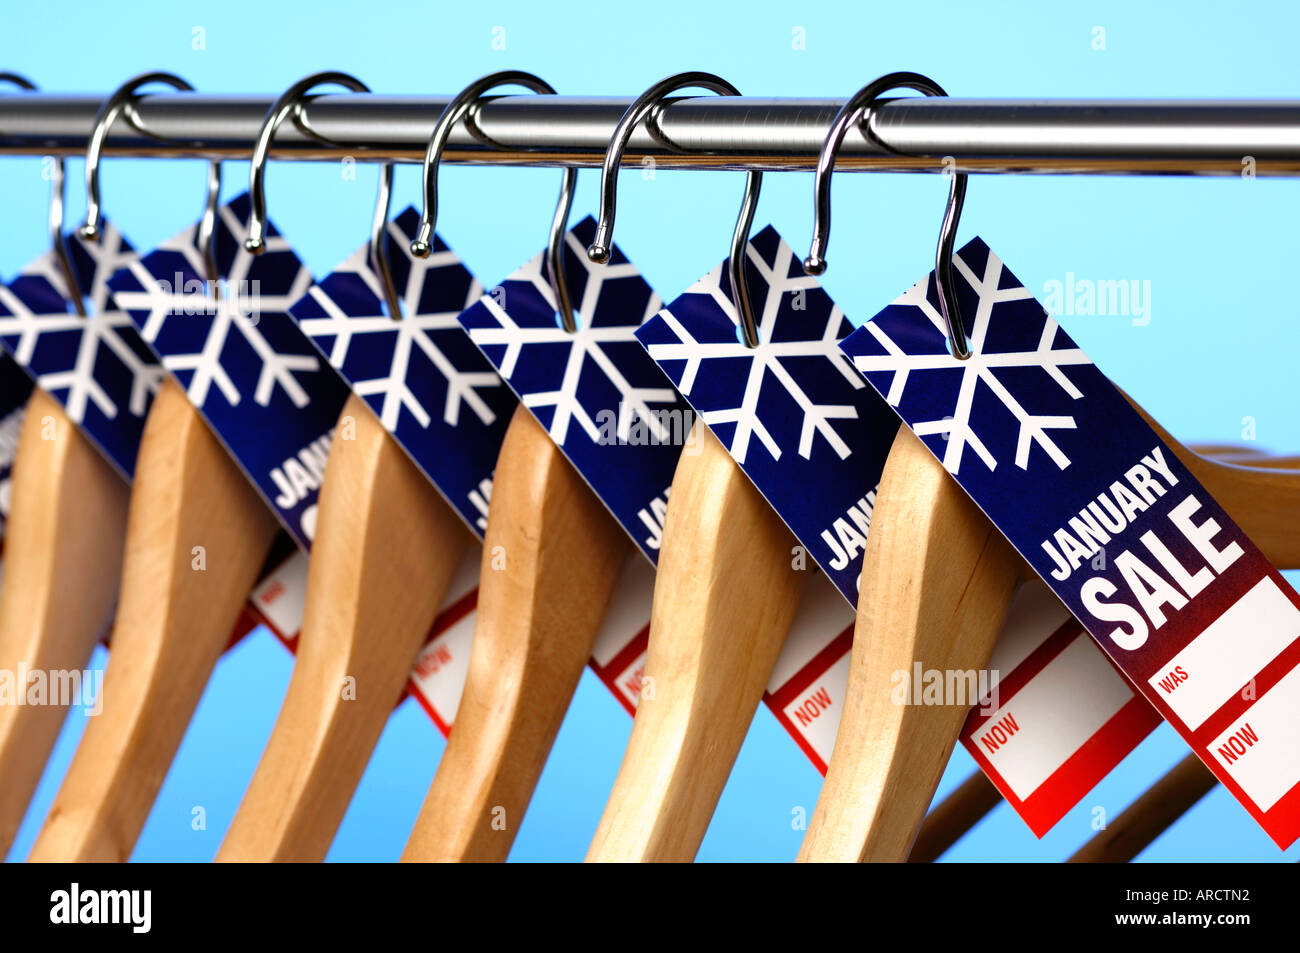 Row of wooden coathangers with January Sale price tags - Stock Image